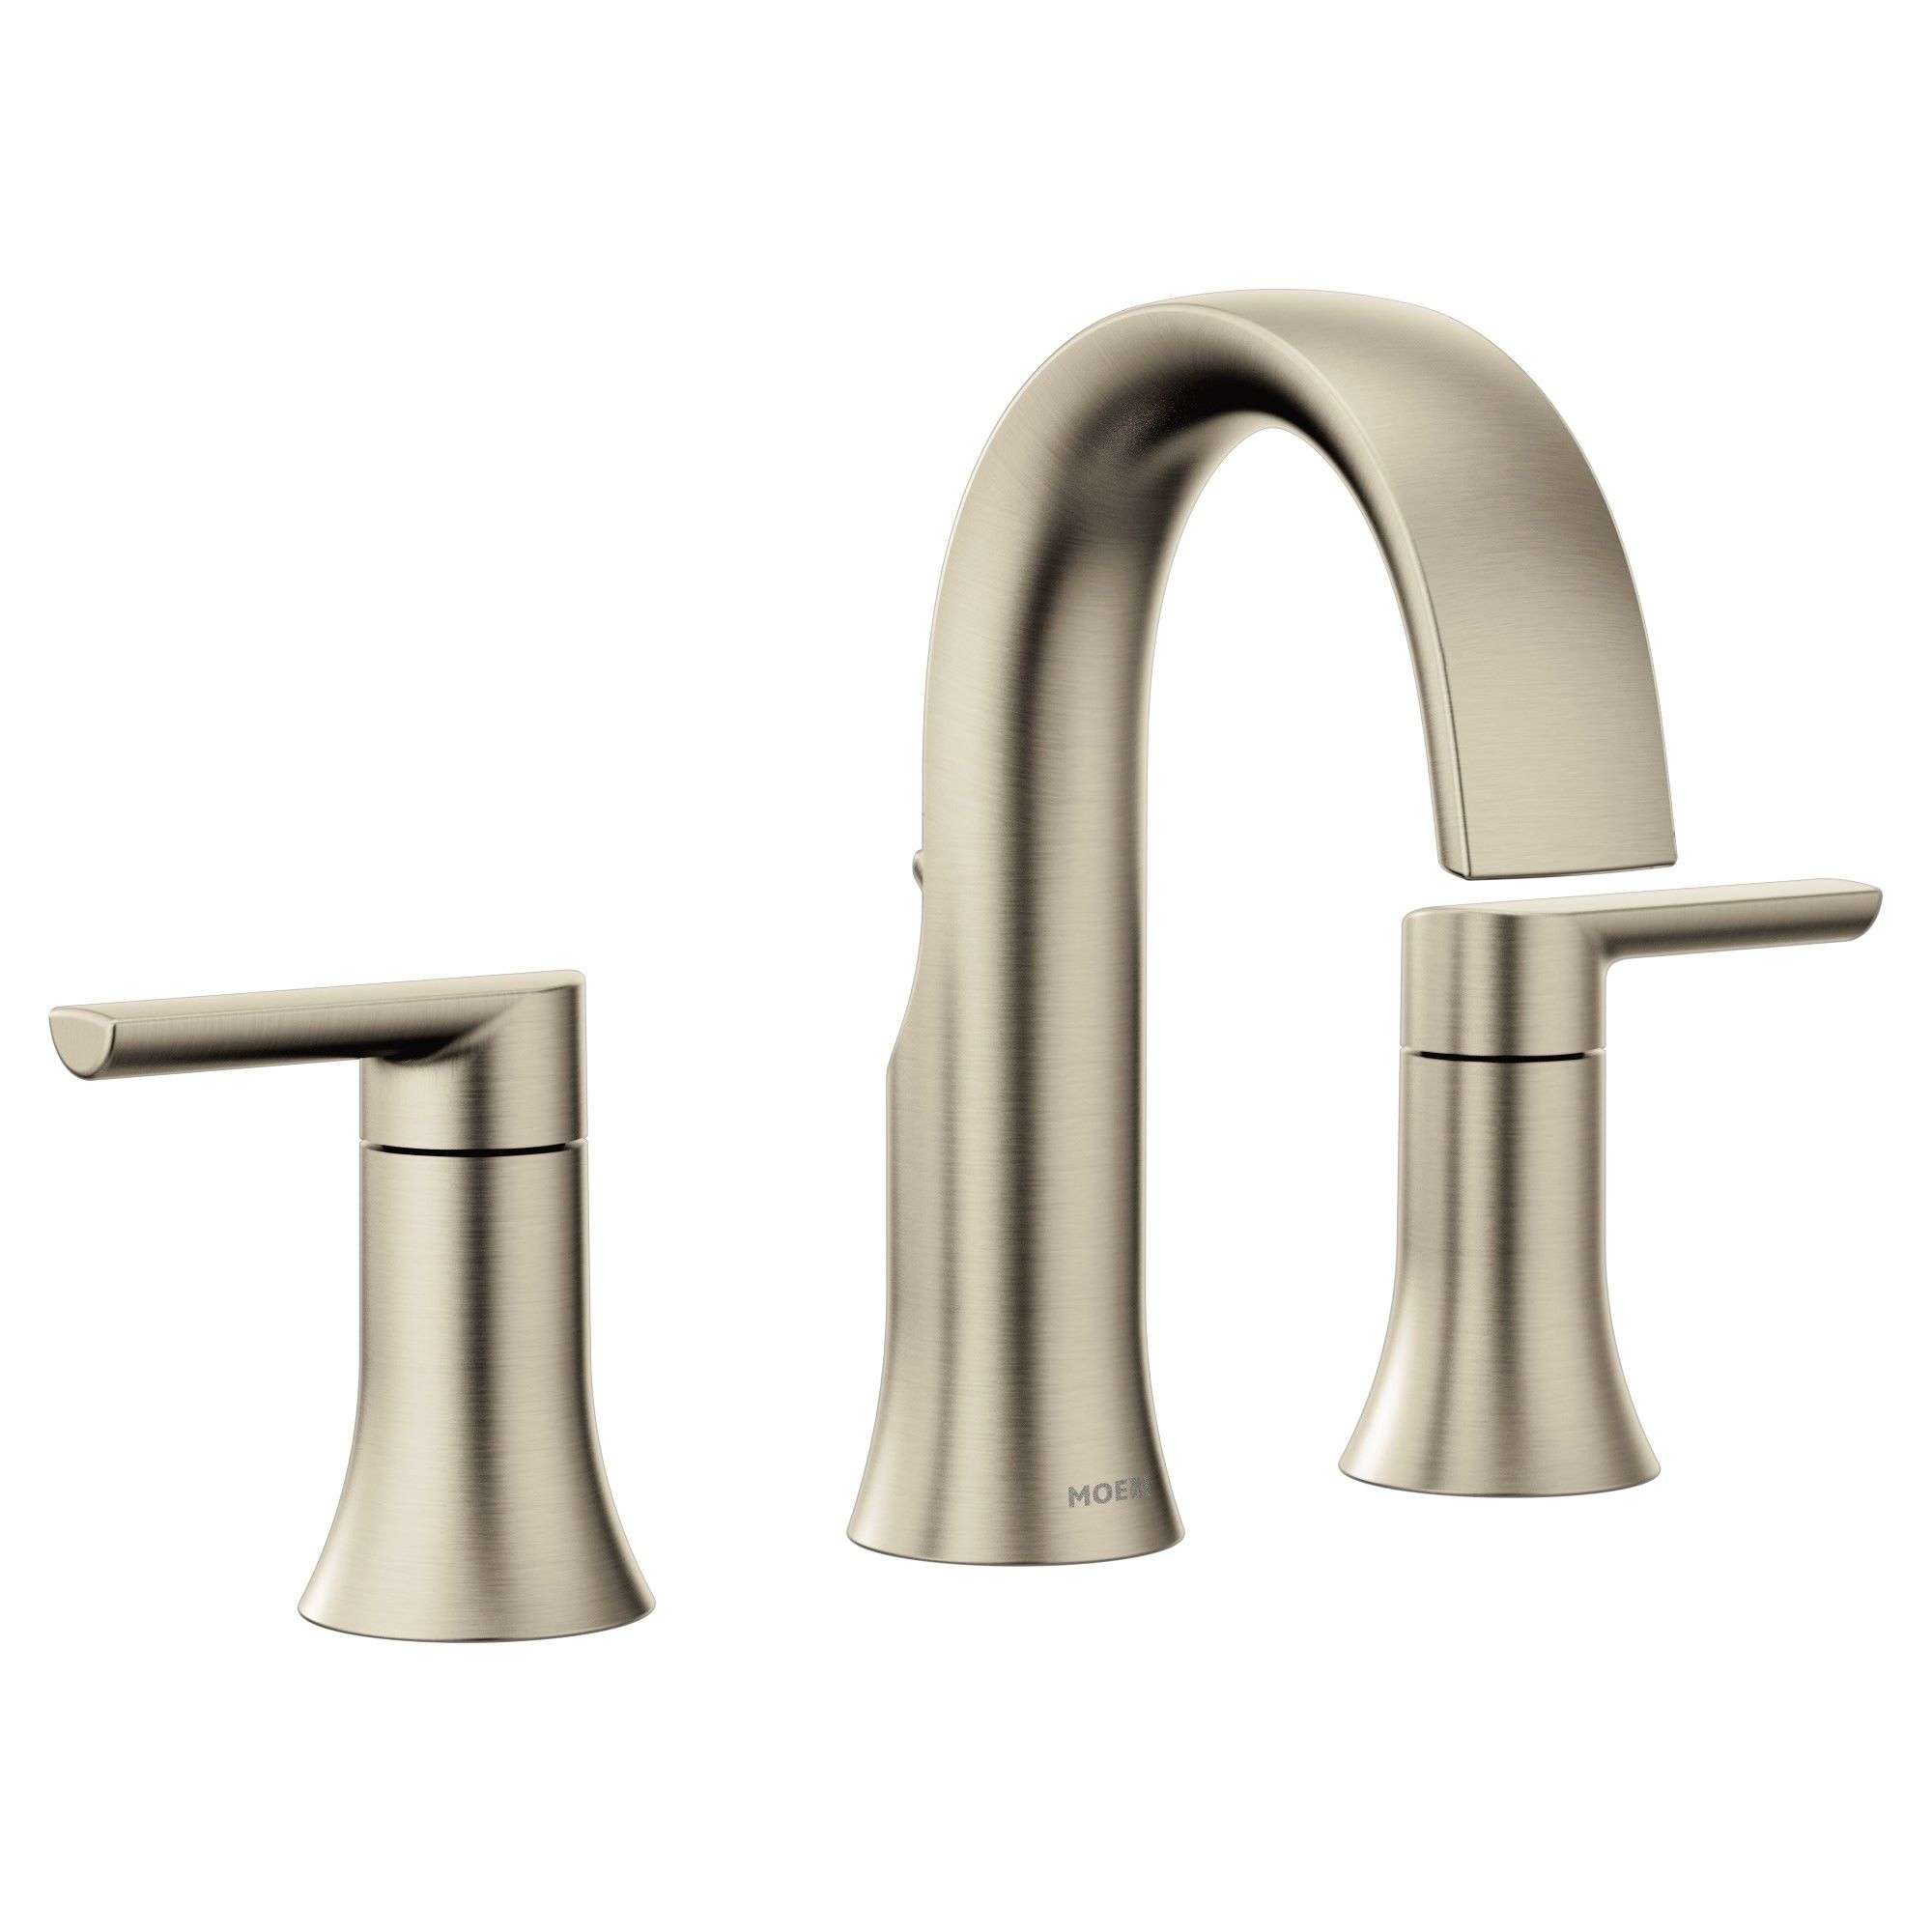 Moen Ts6925 Doux 1 2 Gpm Widespread Bathroom Faucet Less Valve And Drain Assembly Brushed Nickel In 2019 Bathroom Faucets Widespread Bathroom Faucet Sink Faucets